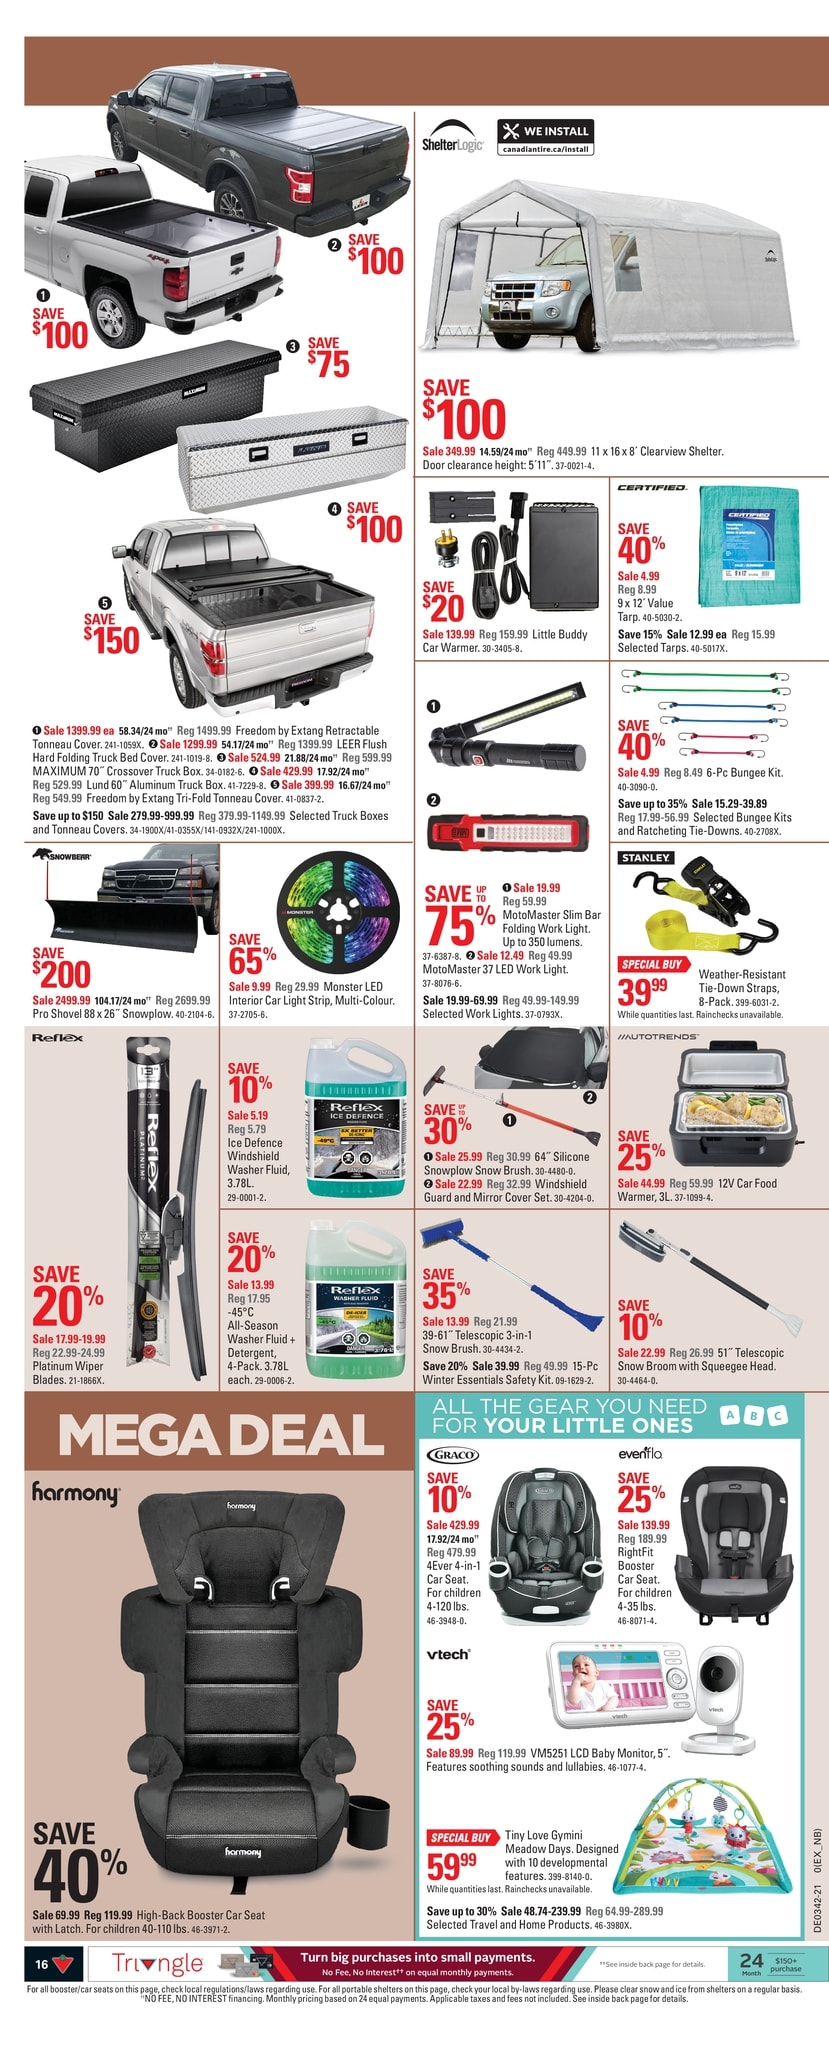 Canadian Tire - Weekly Flyer Specials - Page 17